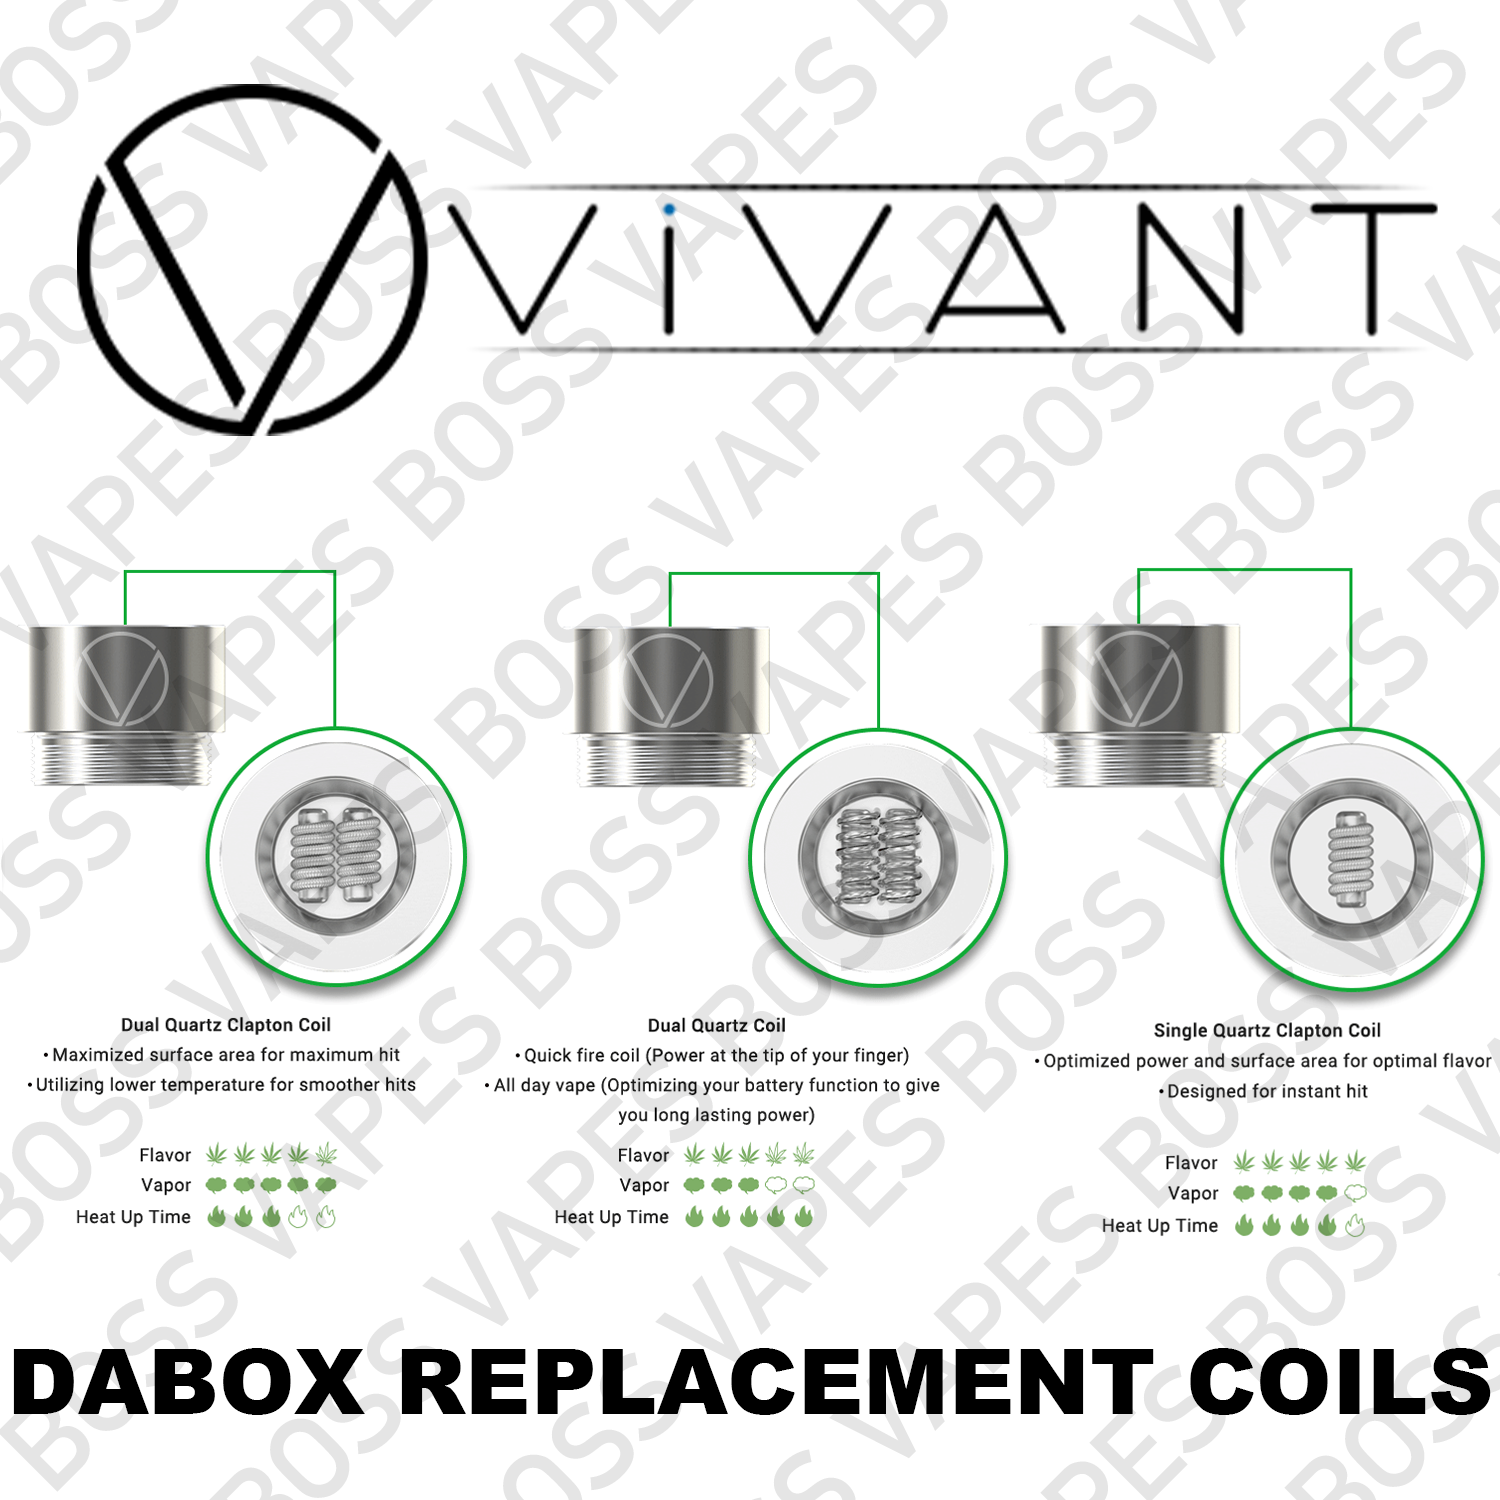 VIVANT DABOX REPLACEMENT COILS (Price Per Coil) - Boss Vapes